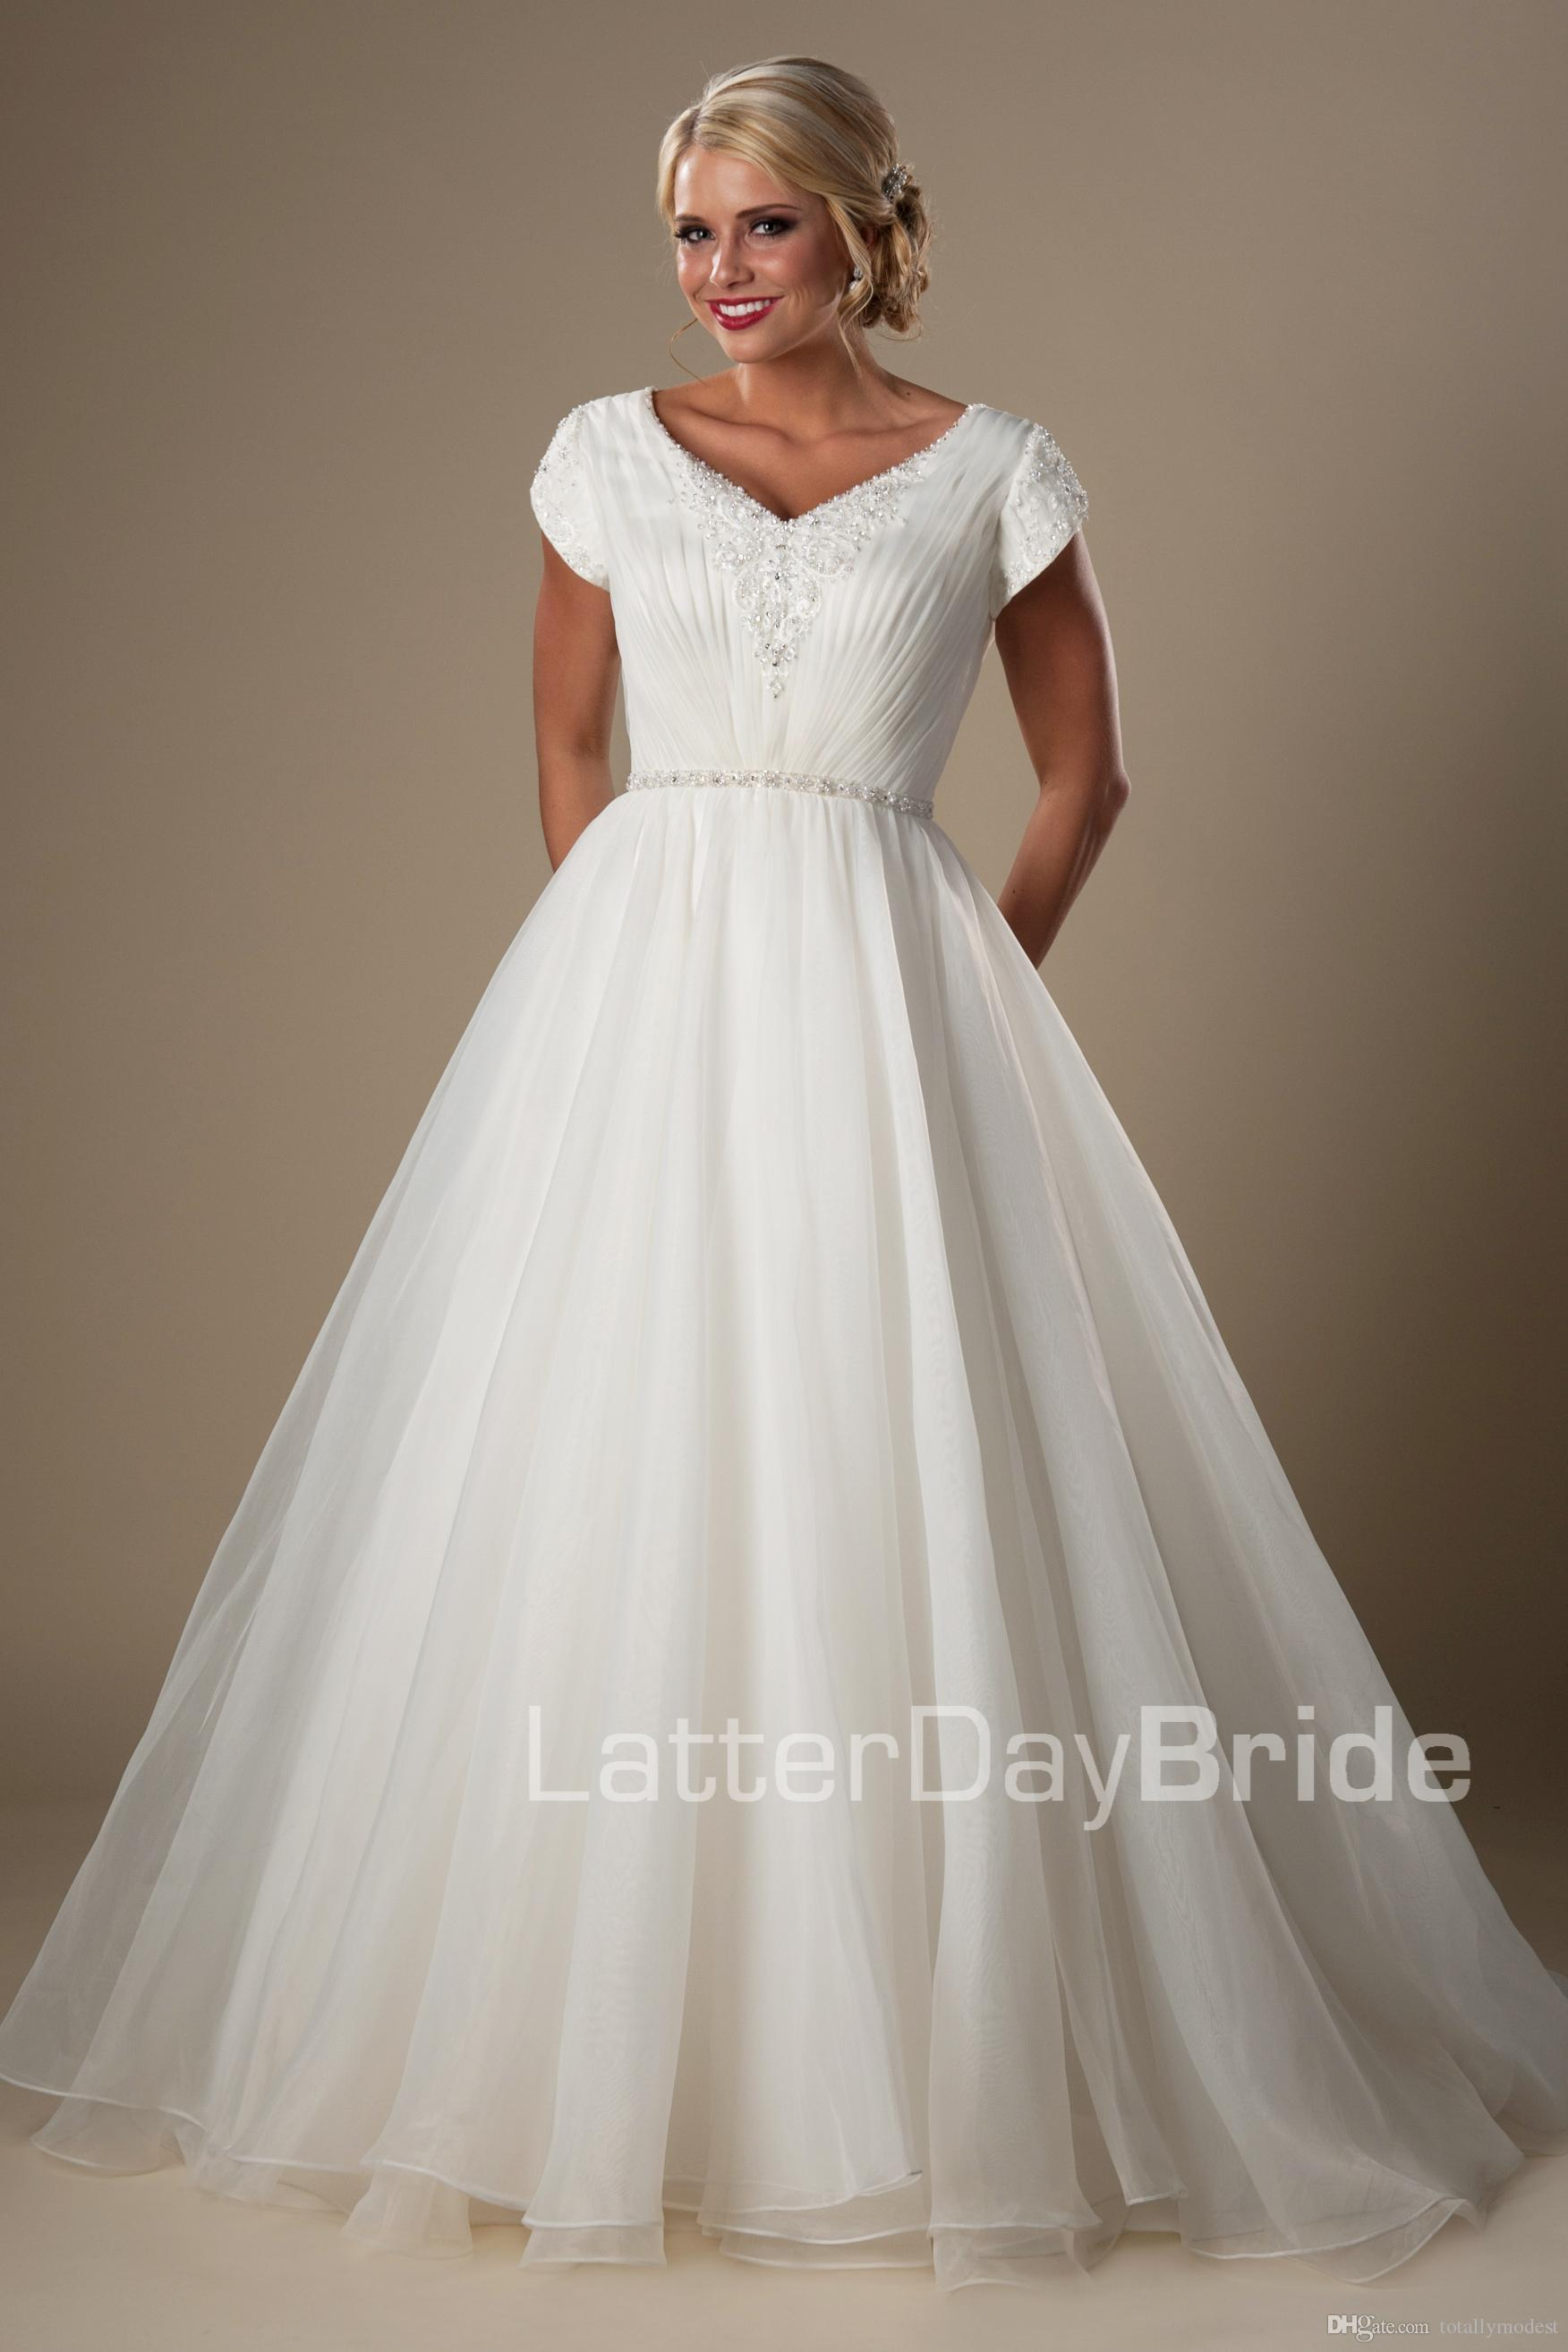 mormon wedding dresses simple a line organza modest wedding dresses with 6019